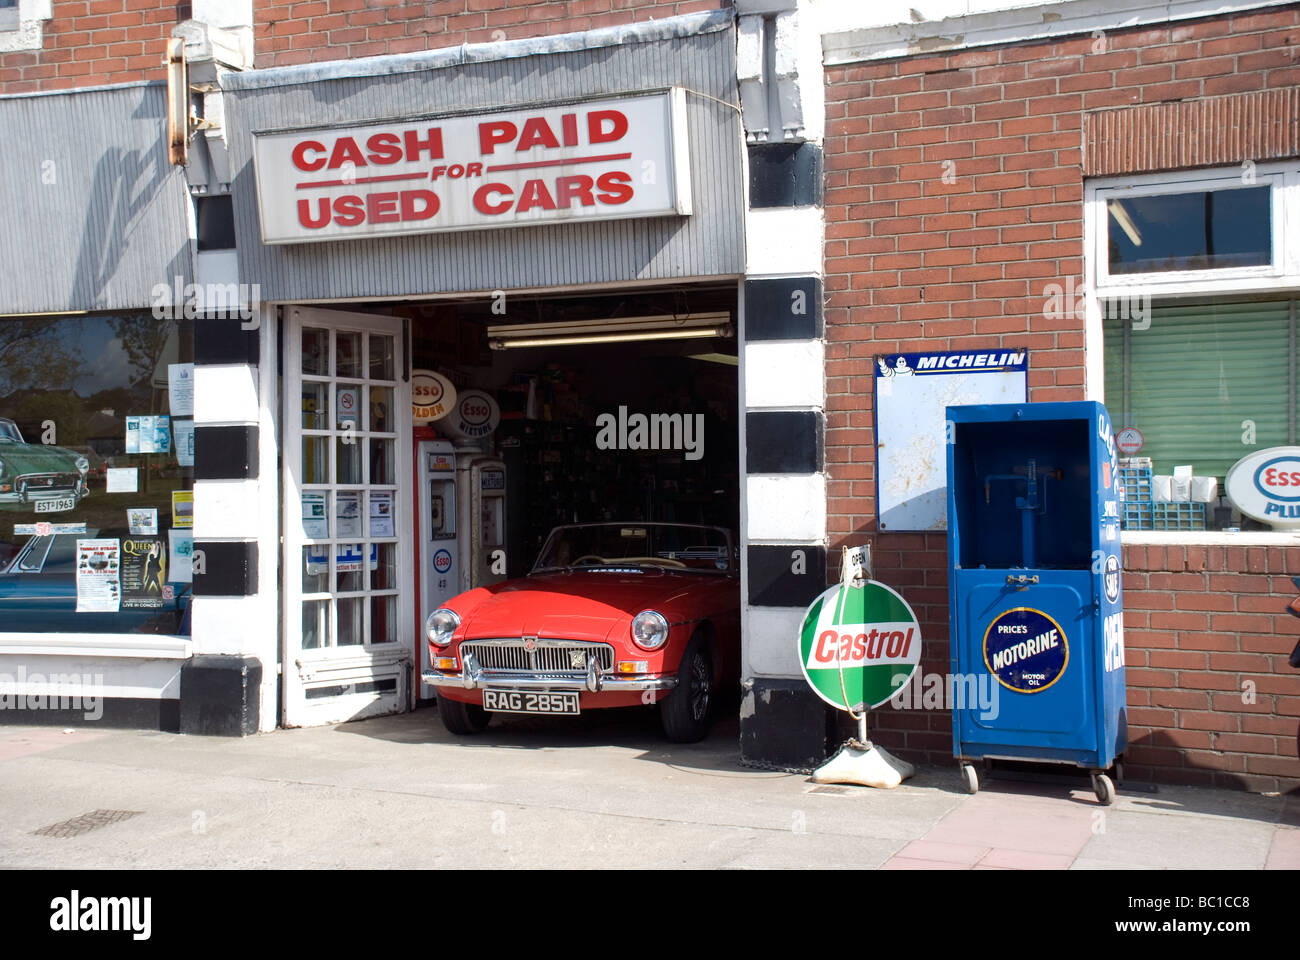 Cars For Cash Stock Photos & Cars For Cash Stock Images - Alamy